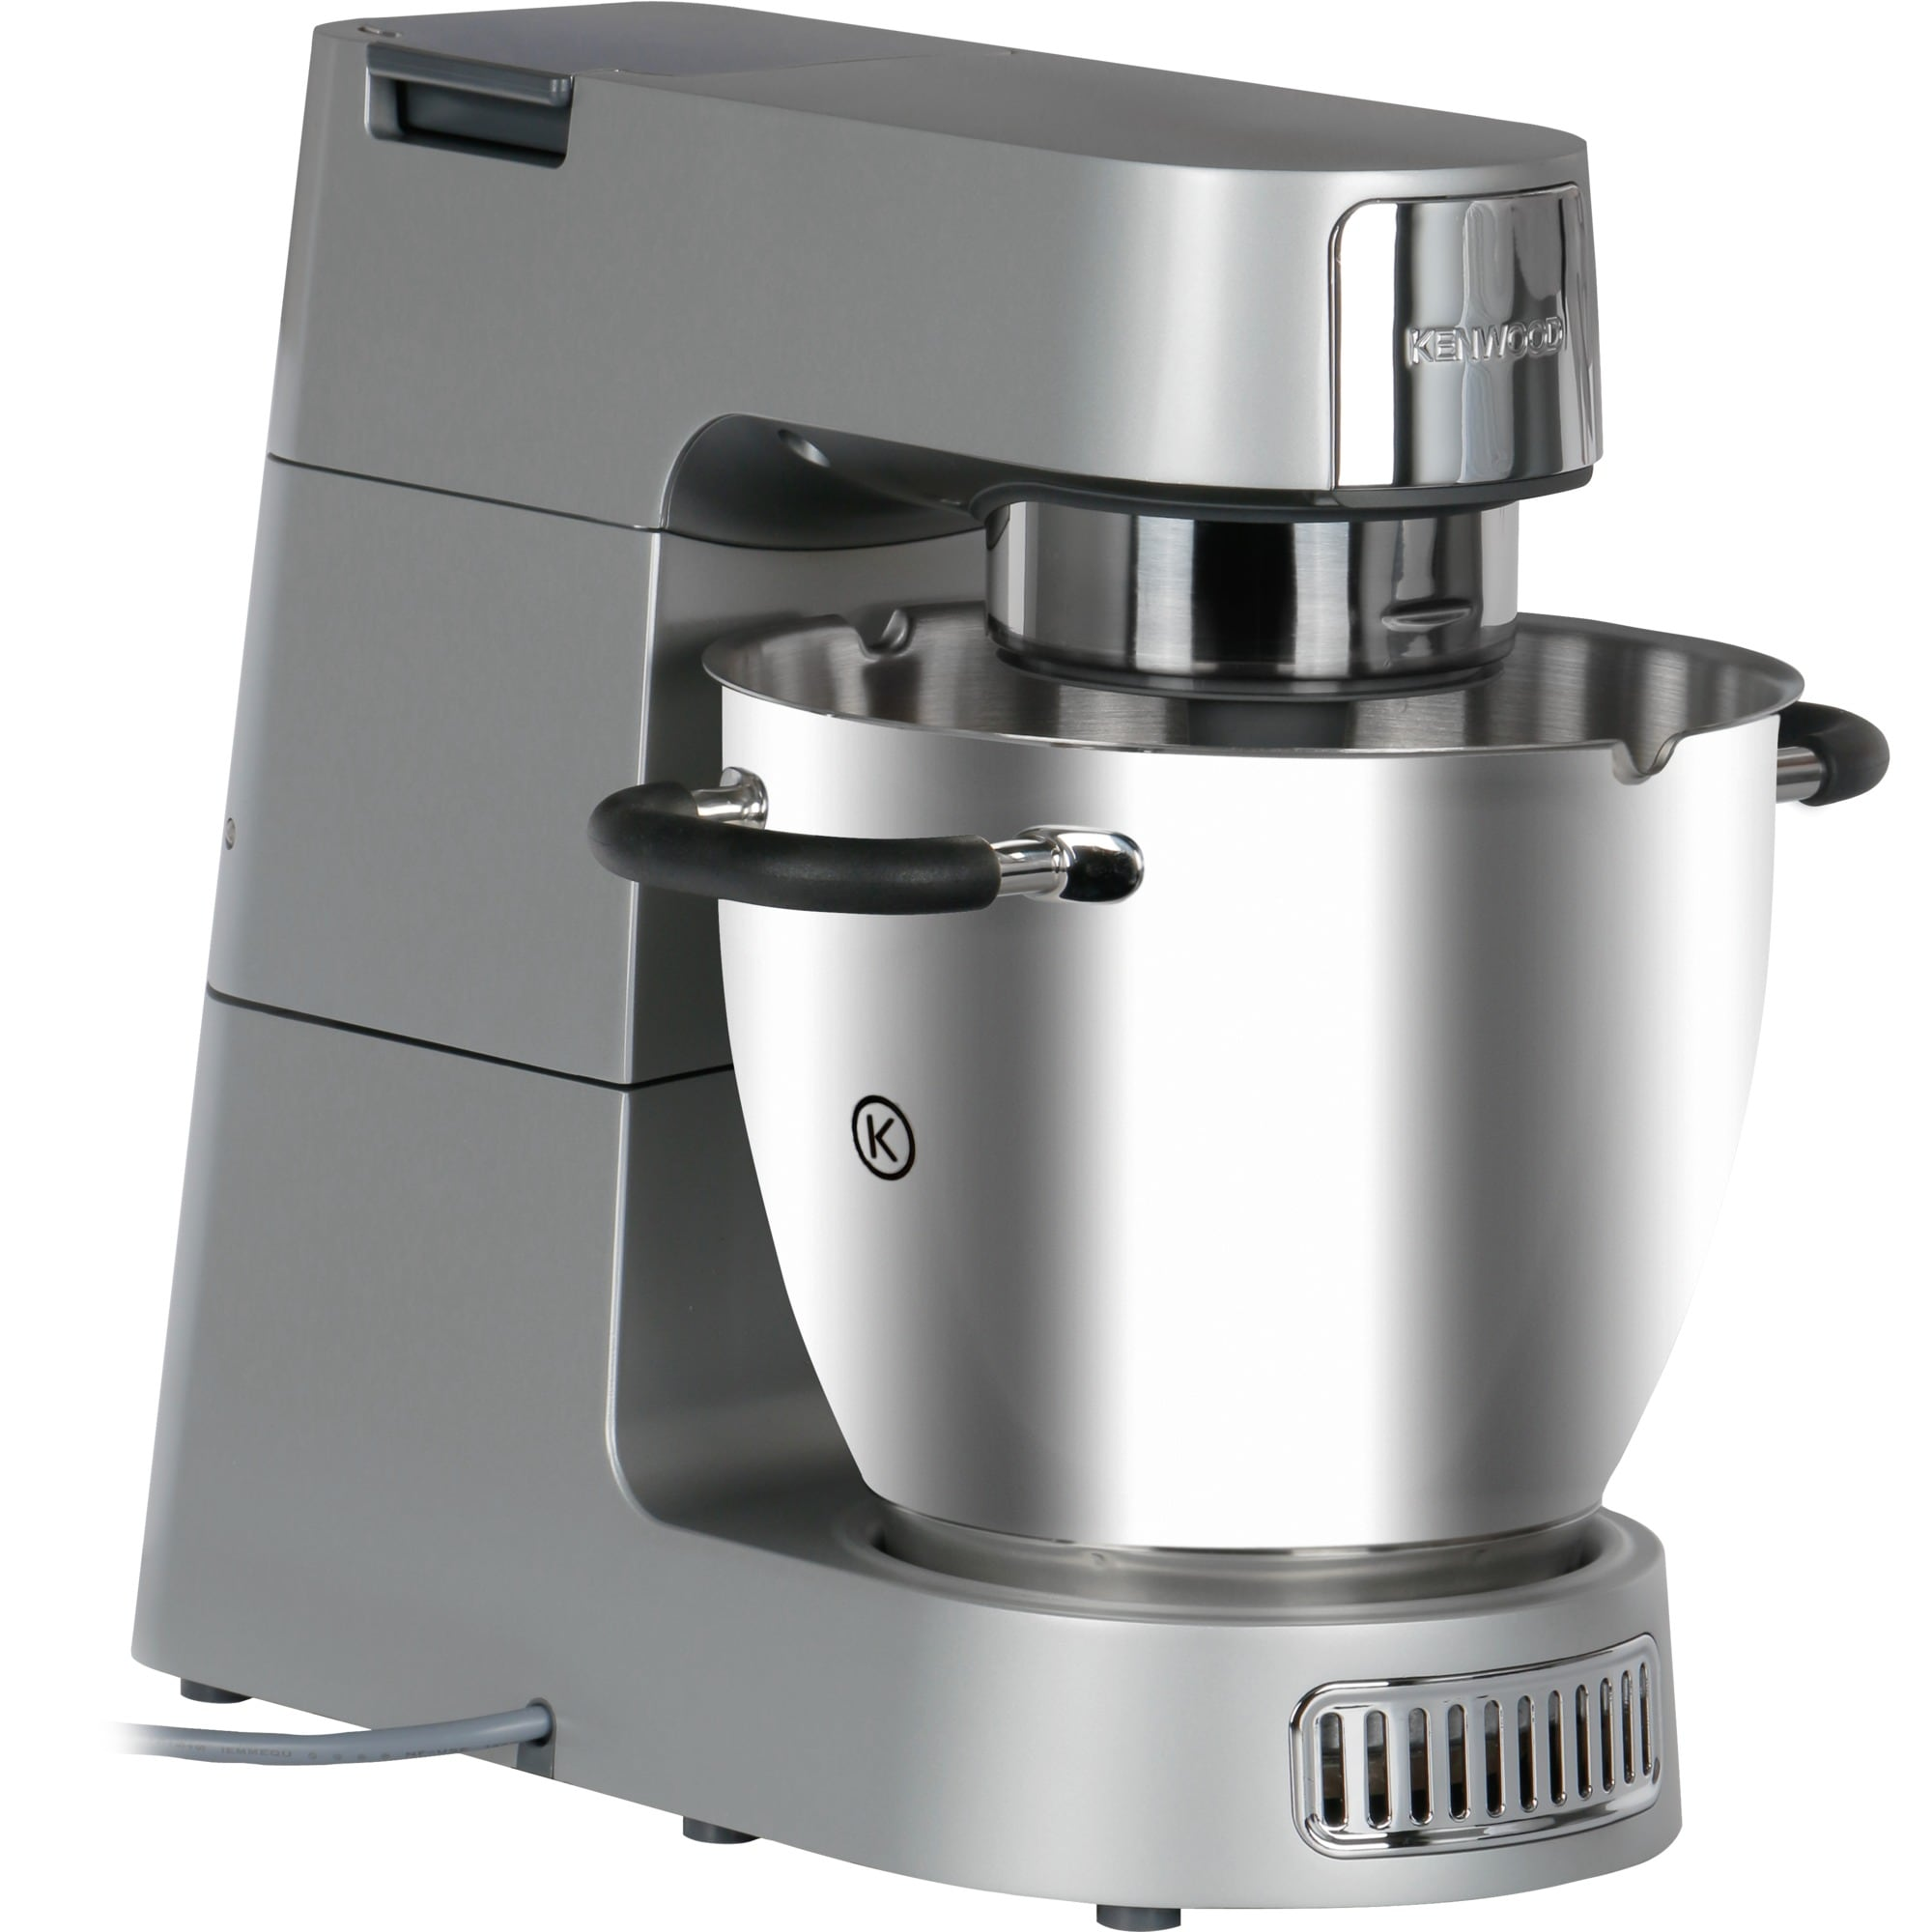 Kenwood Küchenmaschine Cooking Chef Gourmet KCC9060S